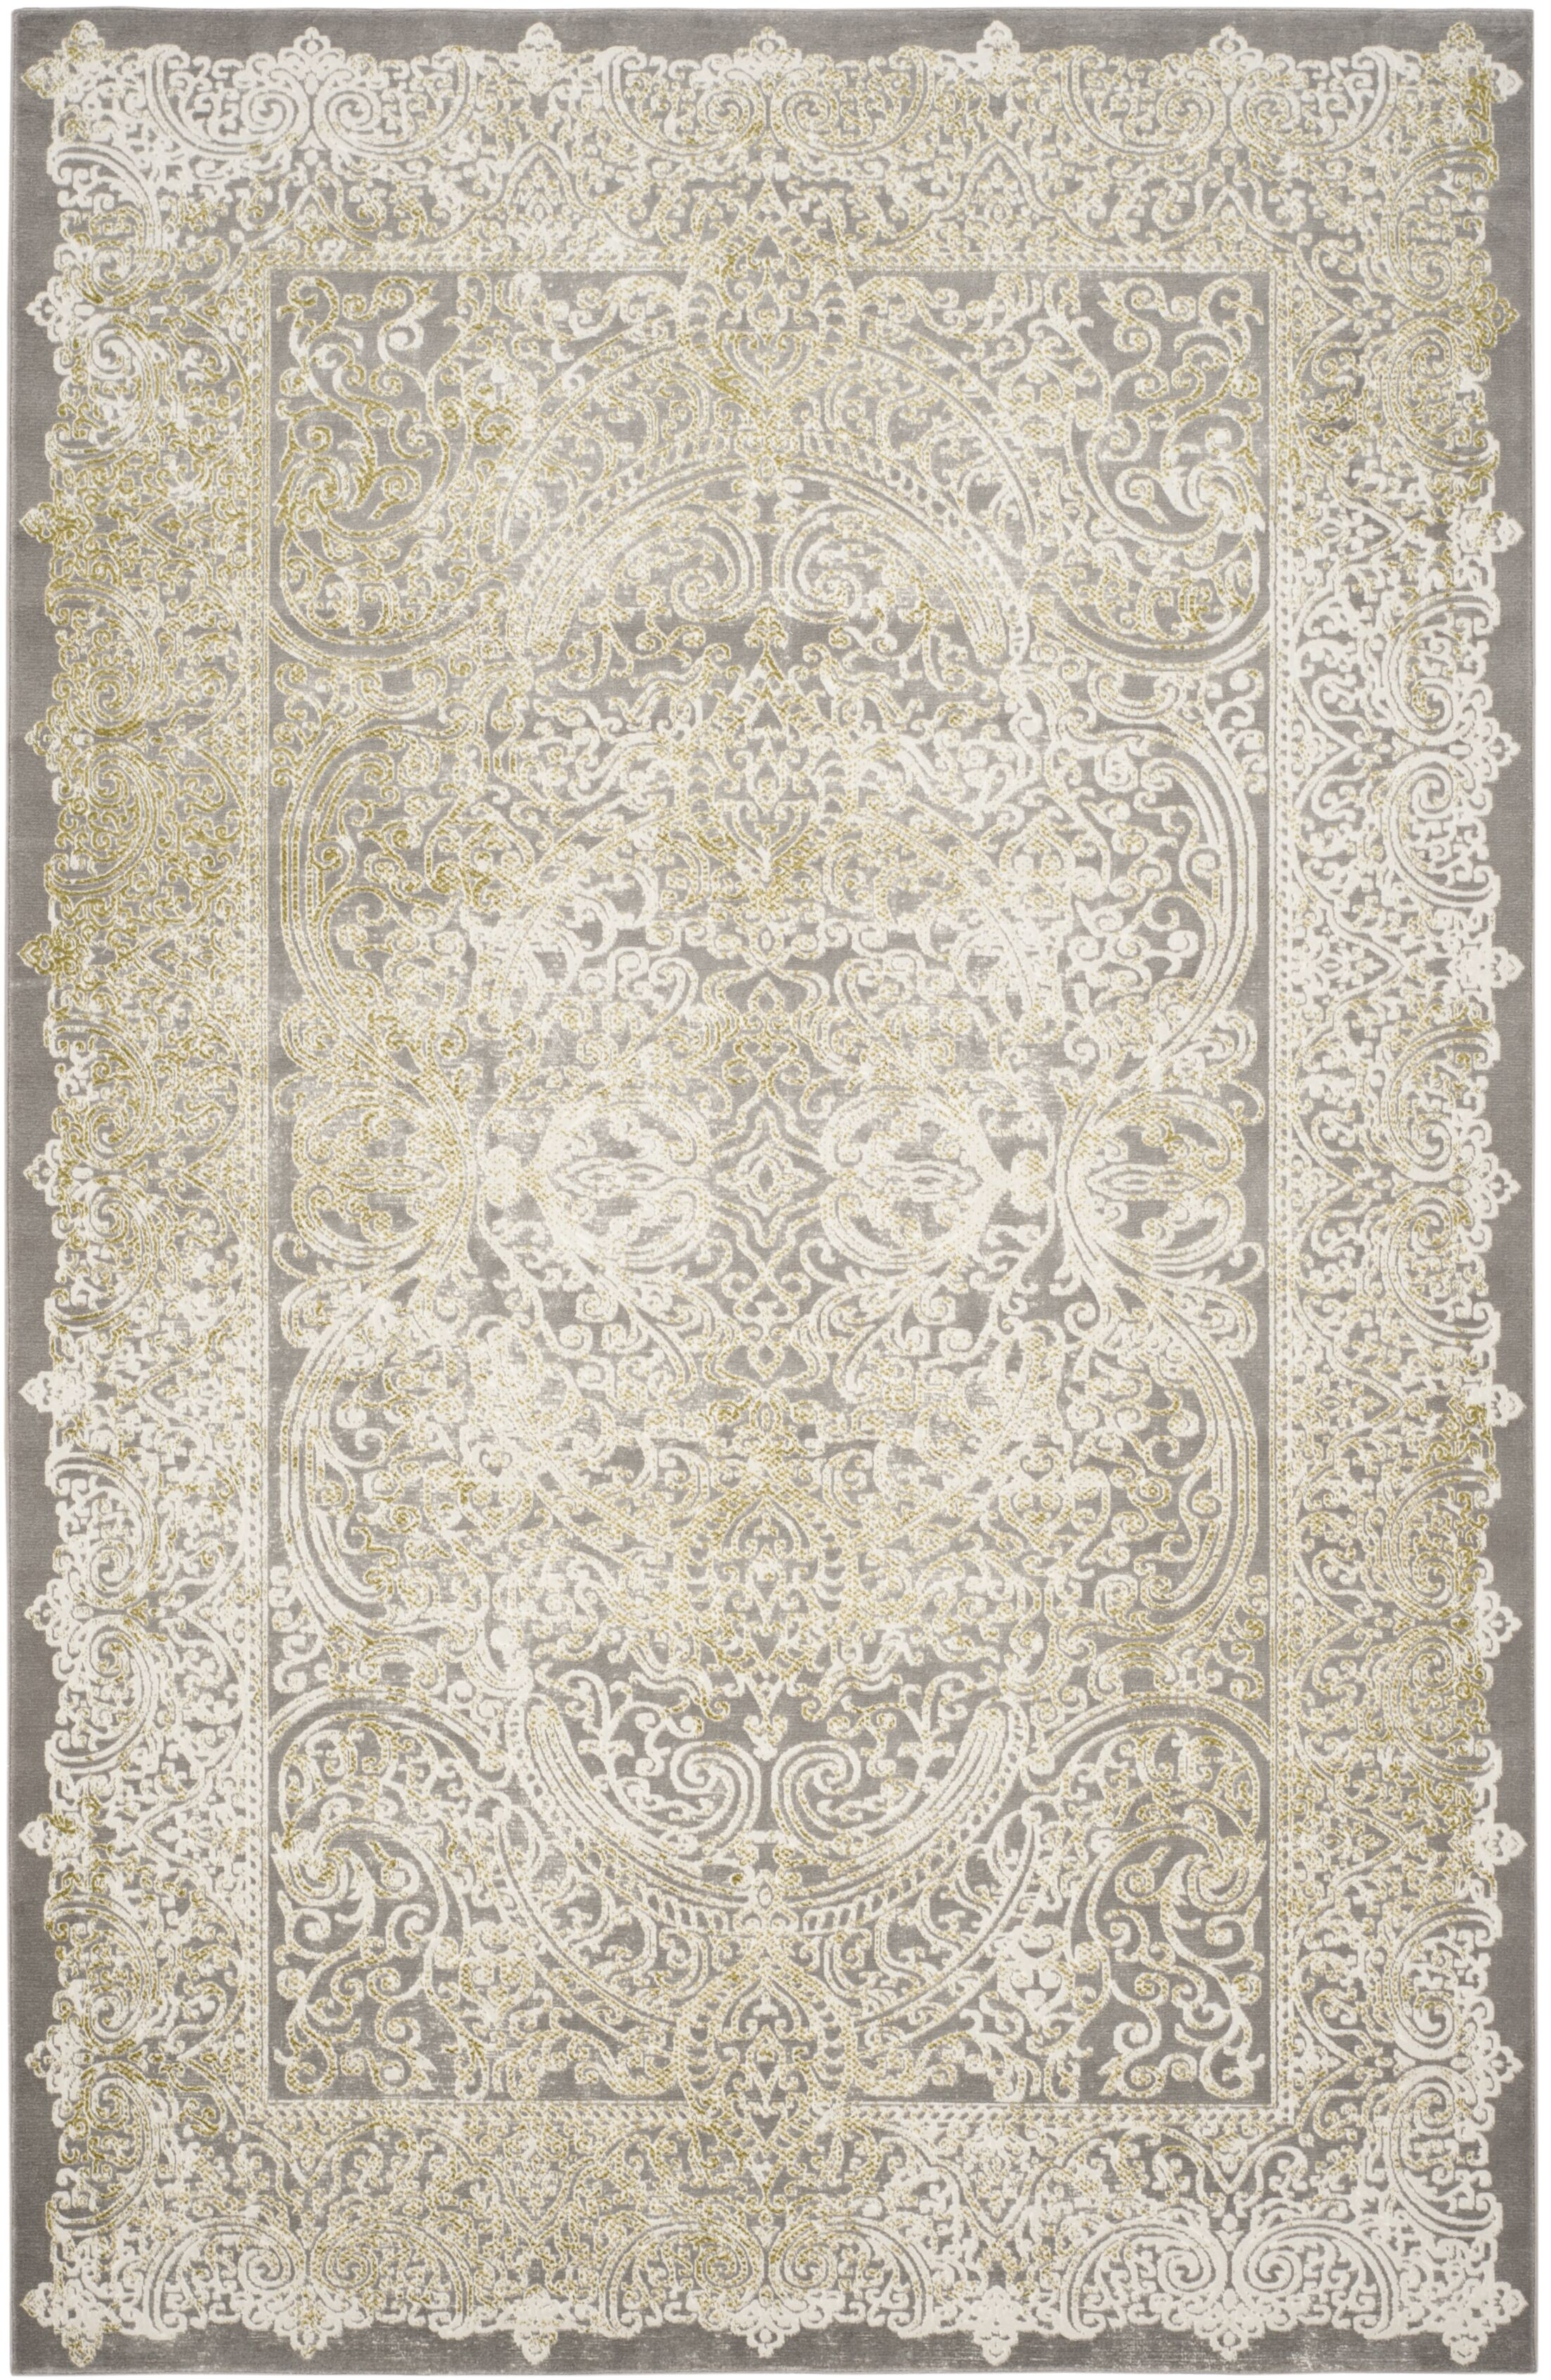 Auguste Taupe Area Rug Rug Size: Rectangle 8' x 11'